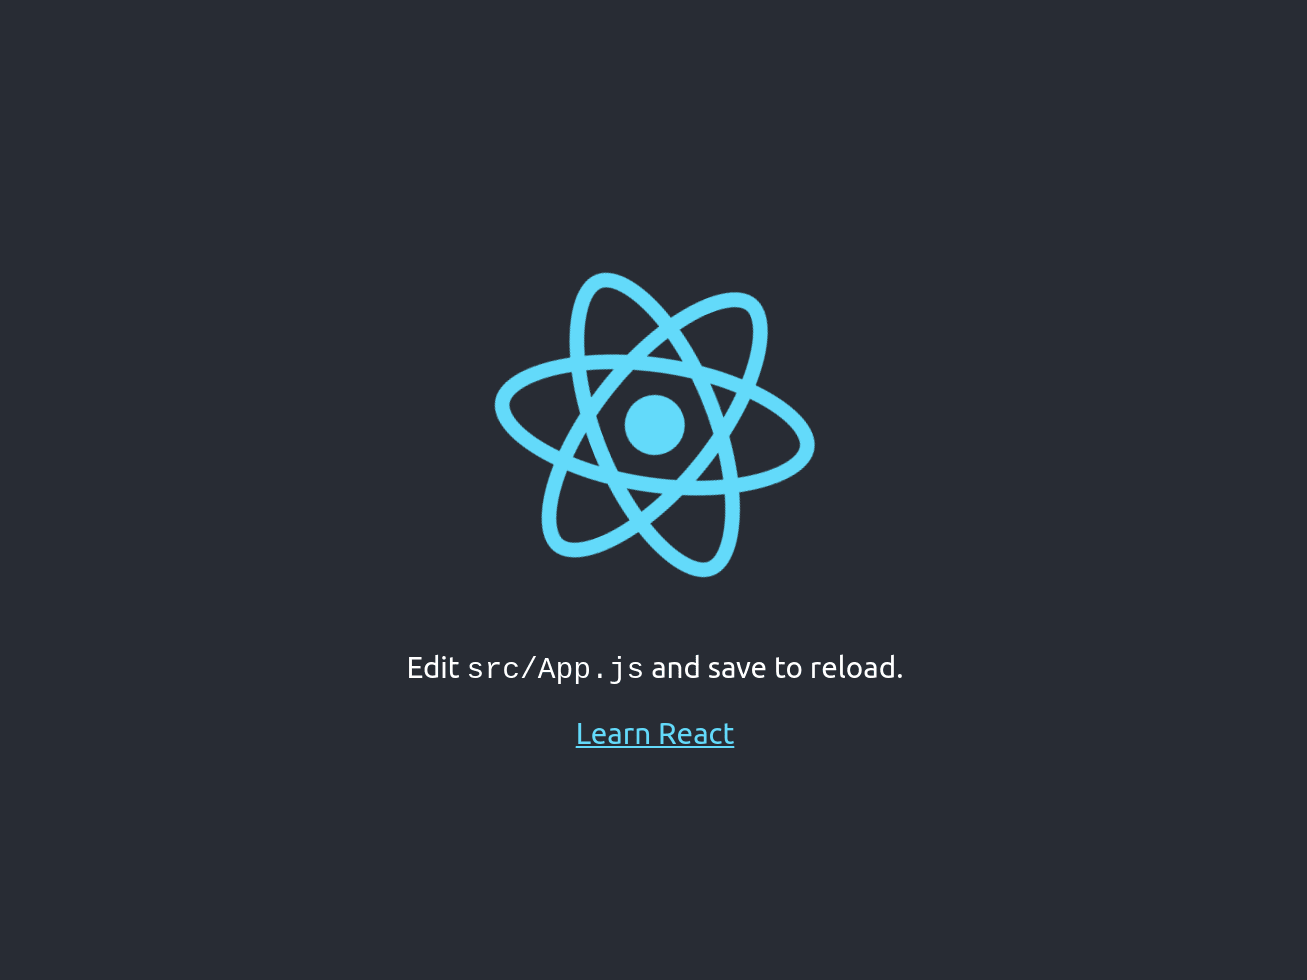 Initial React screen